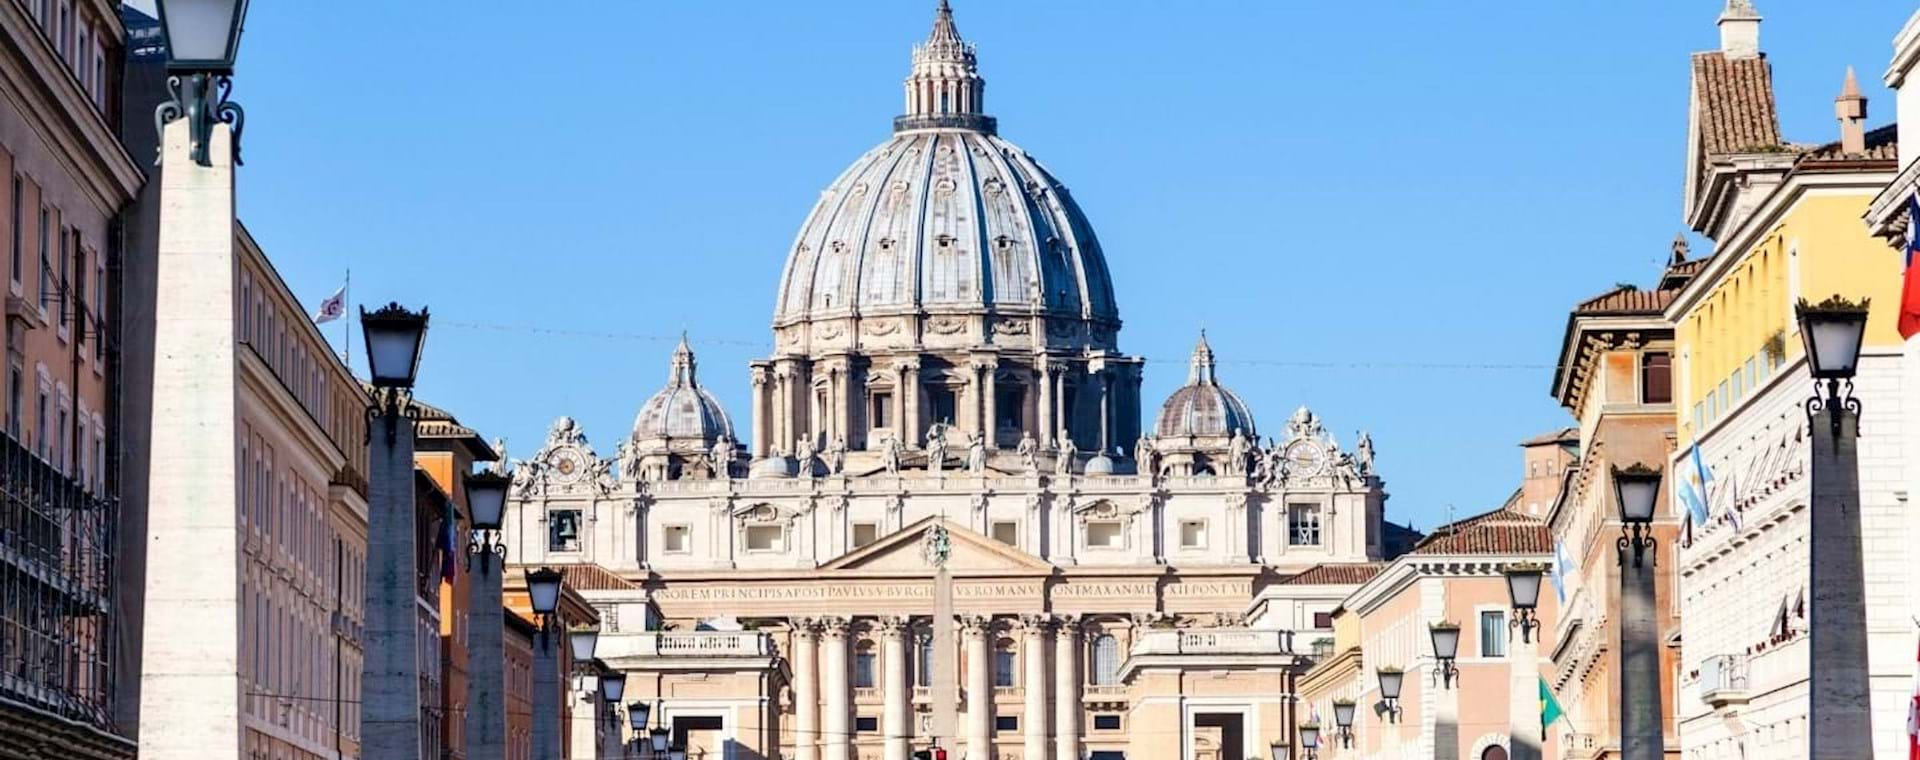 Extended Vatican Museums, Sistine Chapel, & St. Peter's Basilica Tour with Special Access Areas